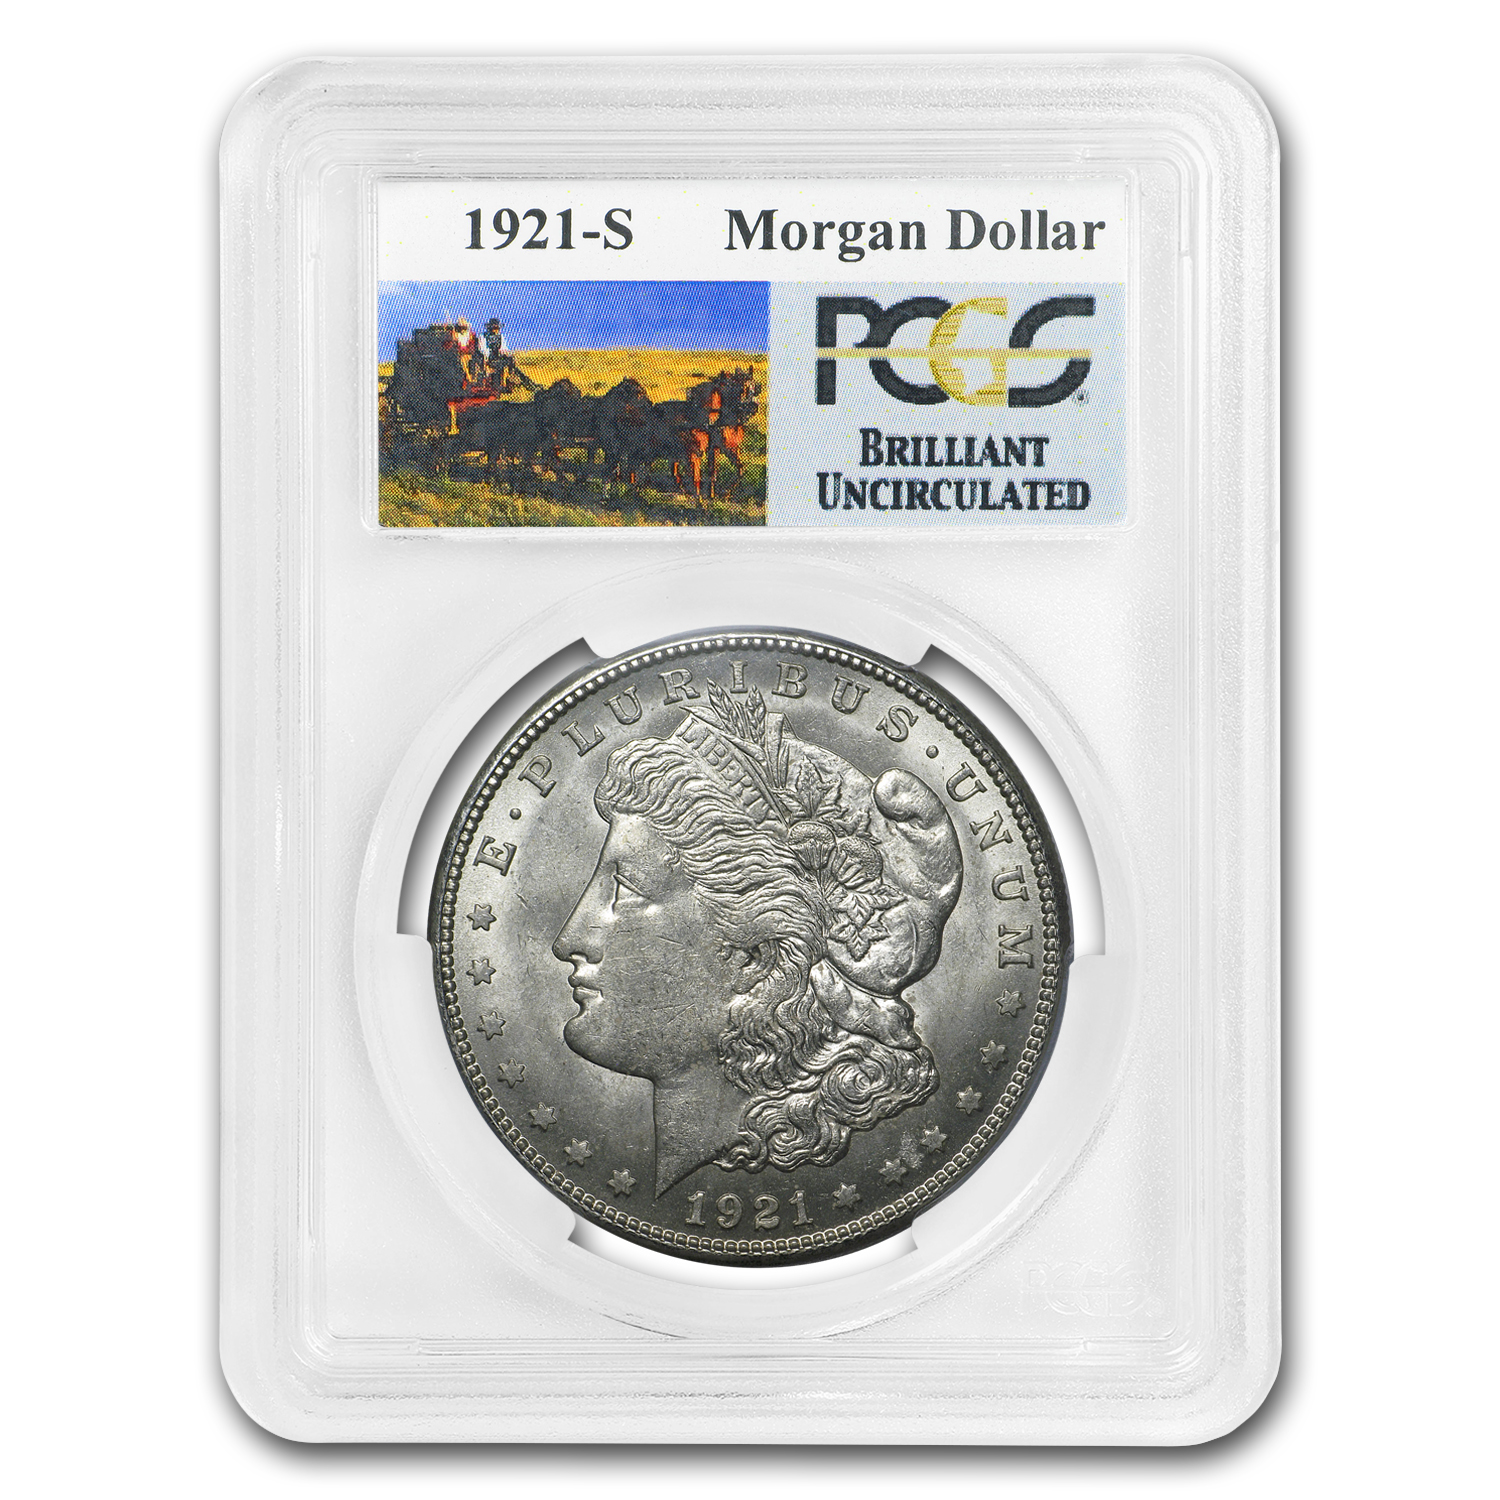 1921-S Stage Coach Morgan Dollar BU PCGS